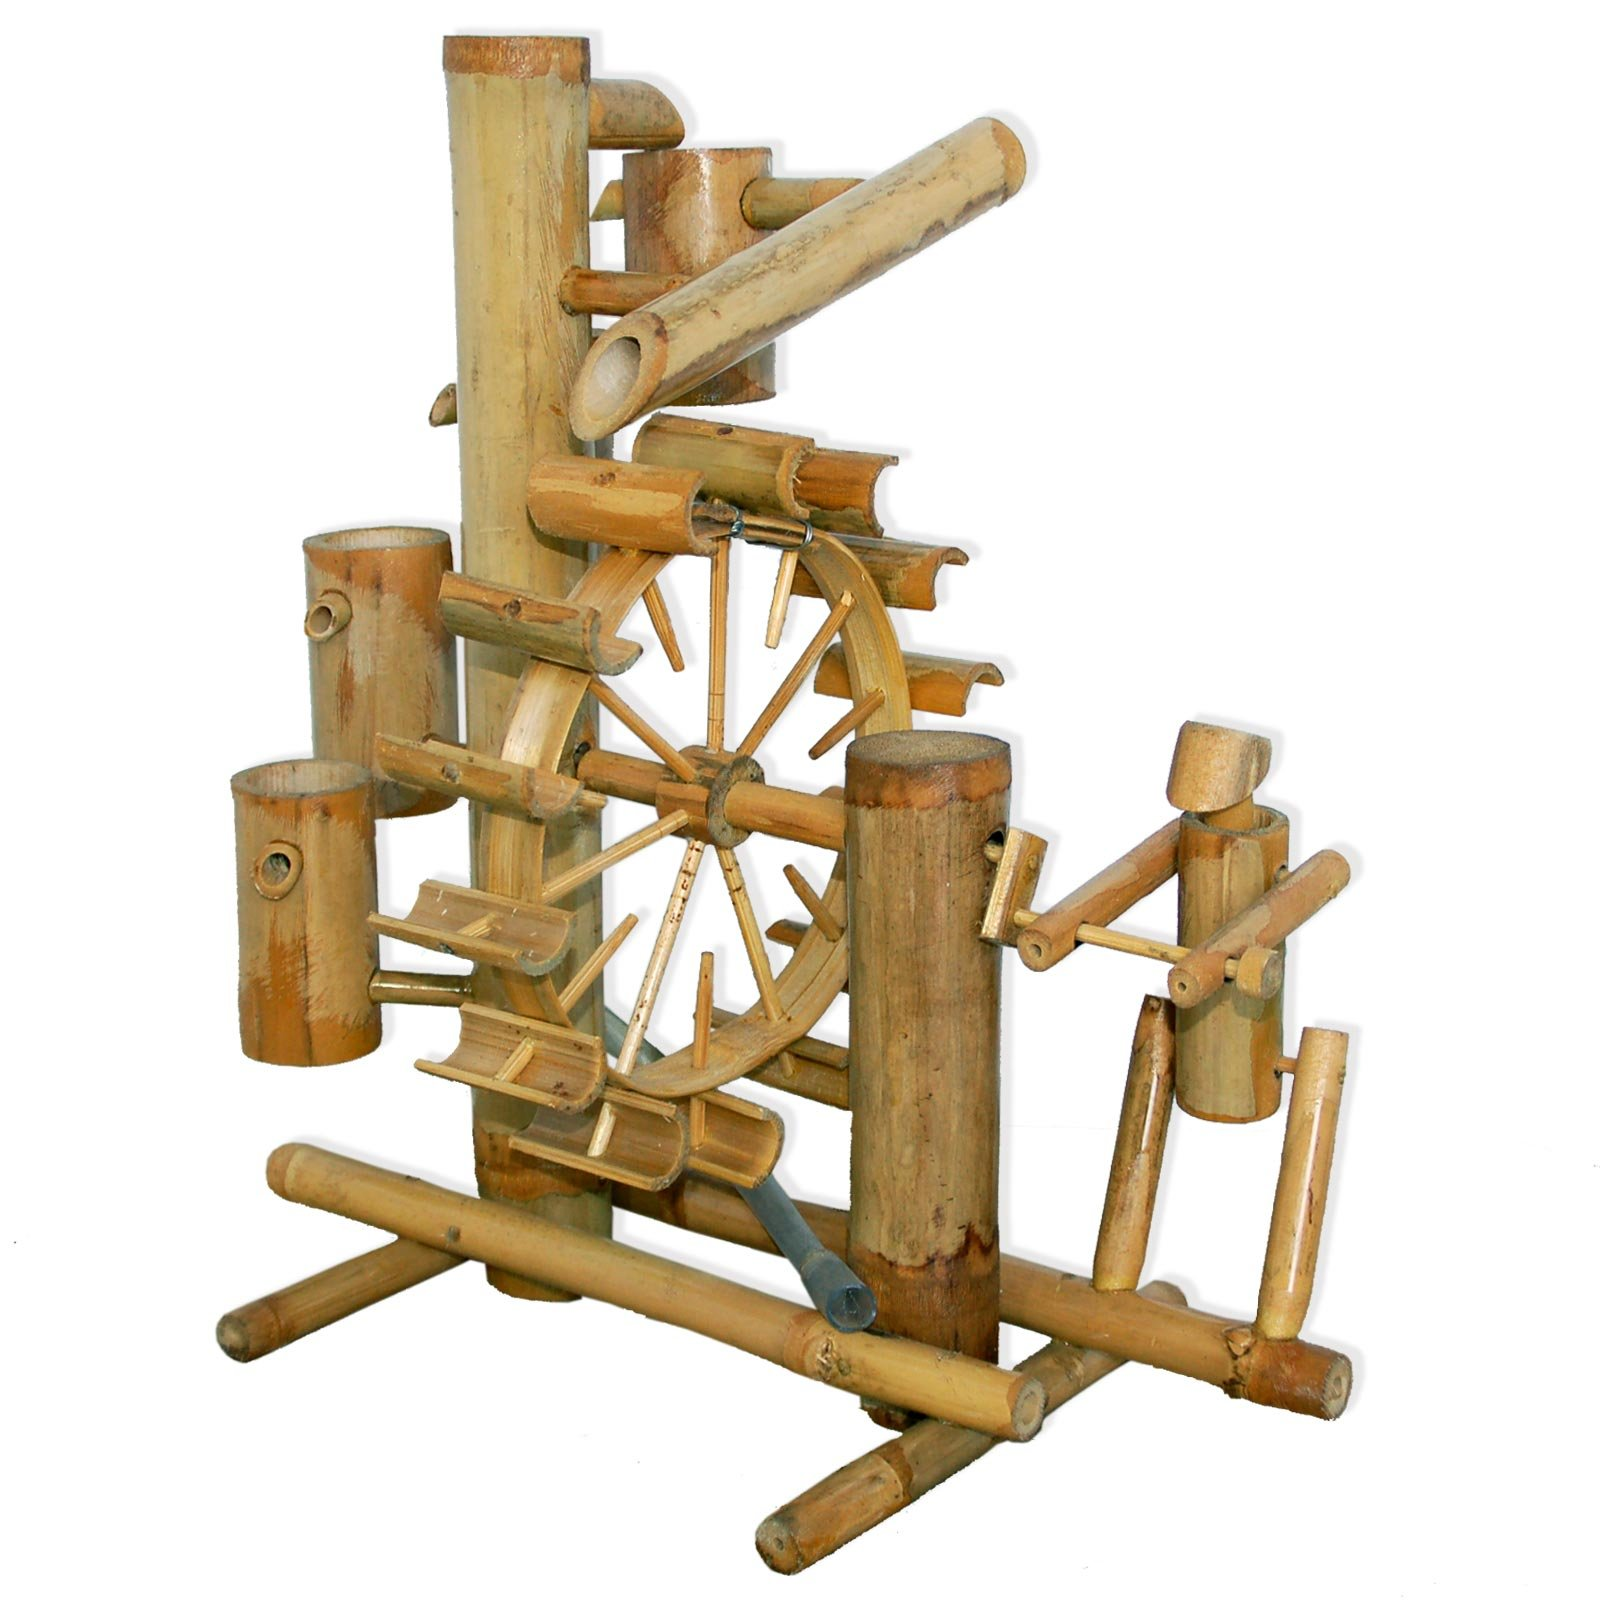 Bamboo fountain, water game, watefall, handmade, imported from Thailand (12038)